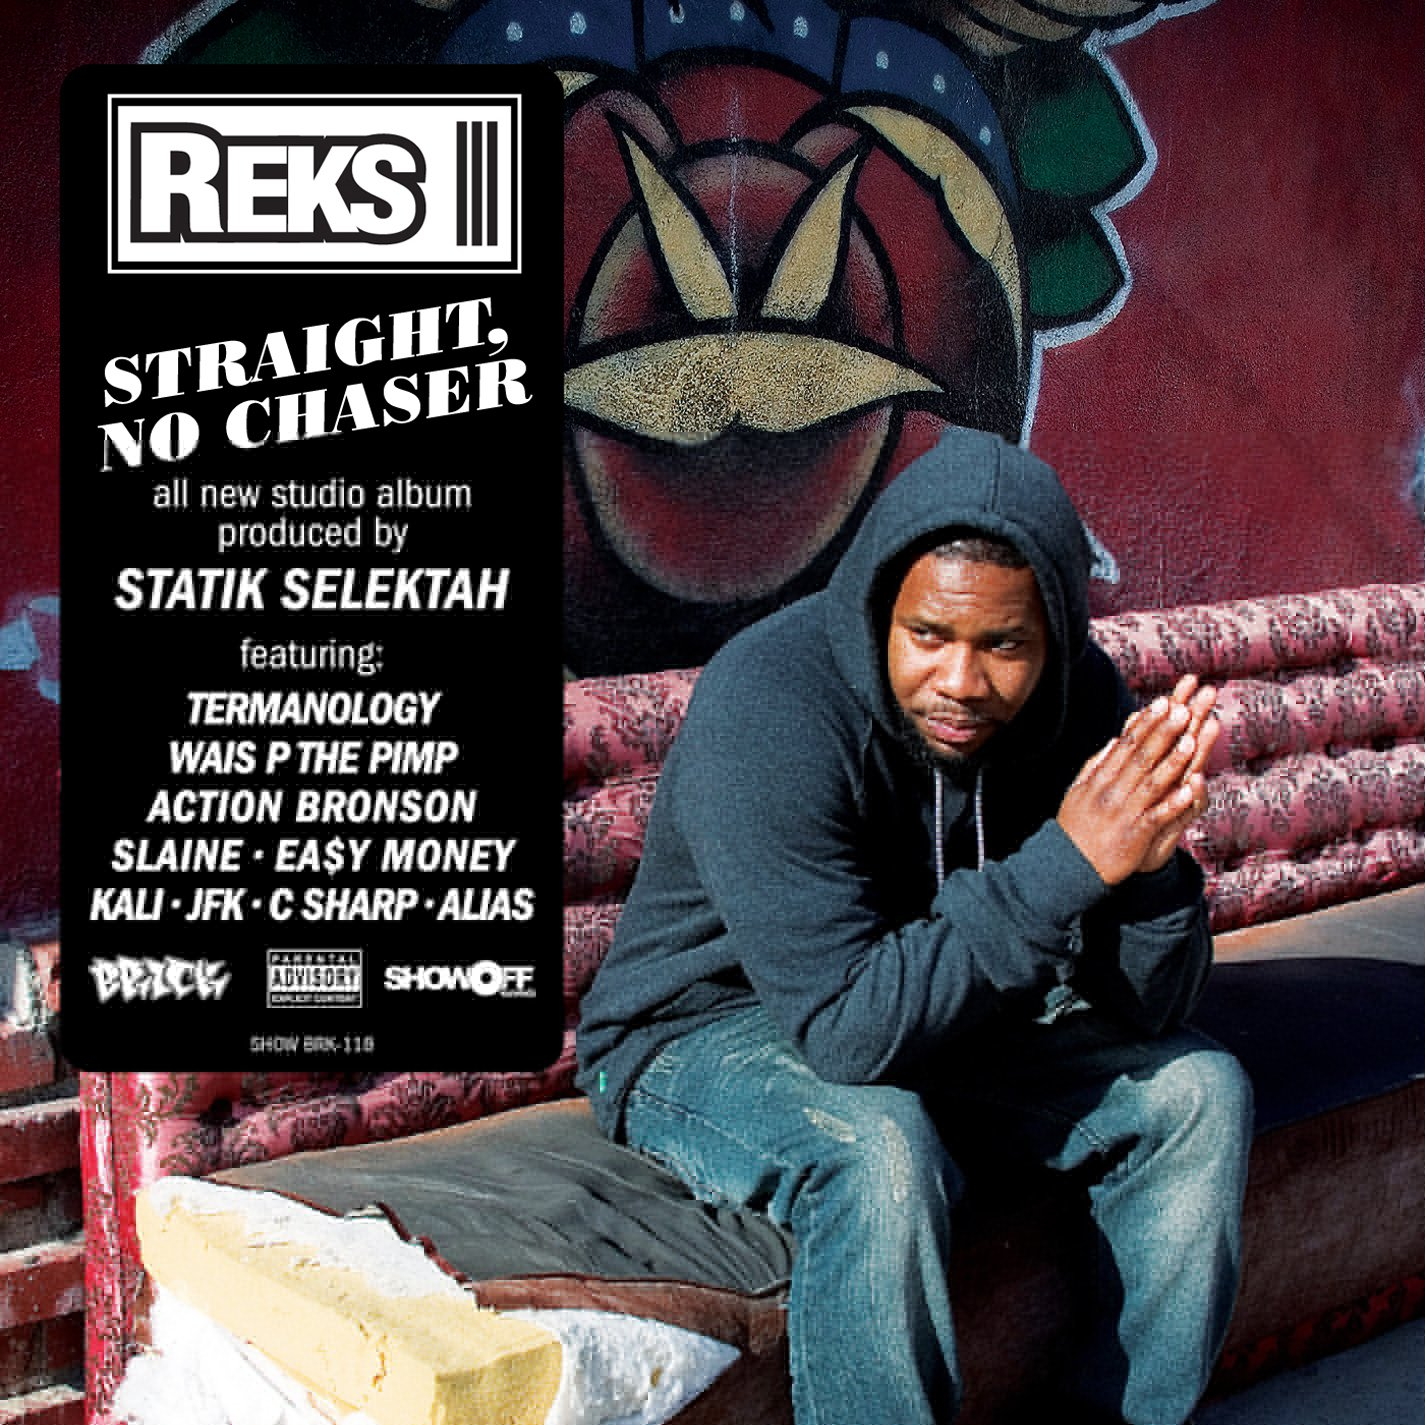 CD : Reks - Straight, No Chaser (CD)